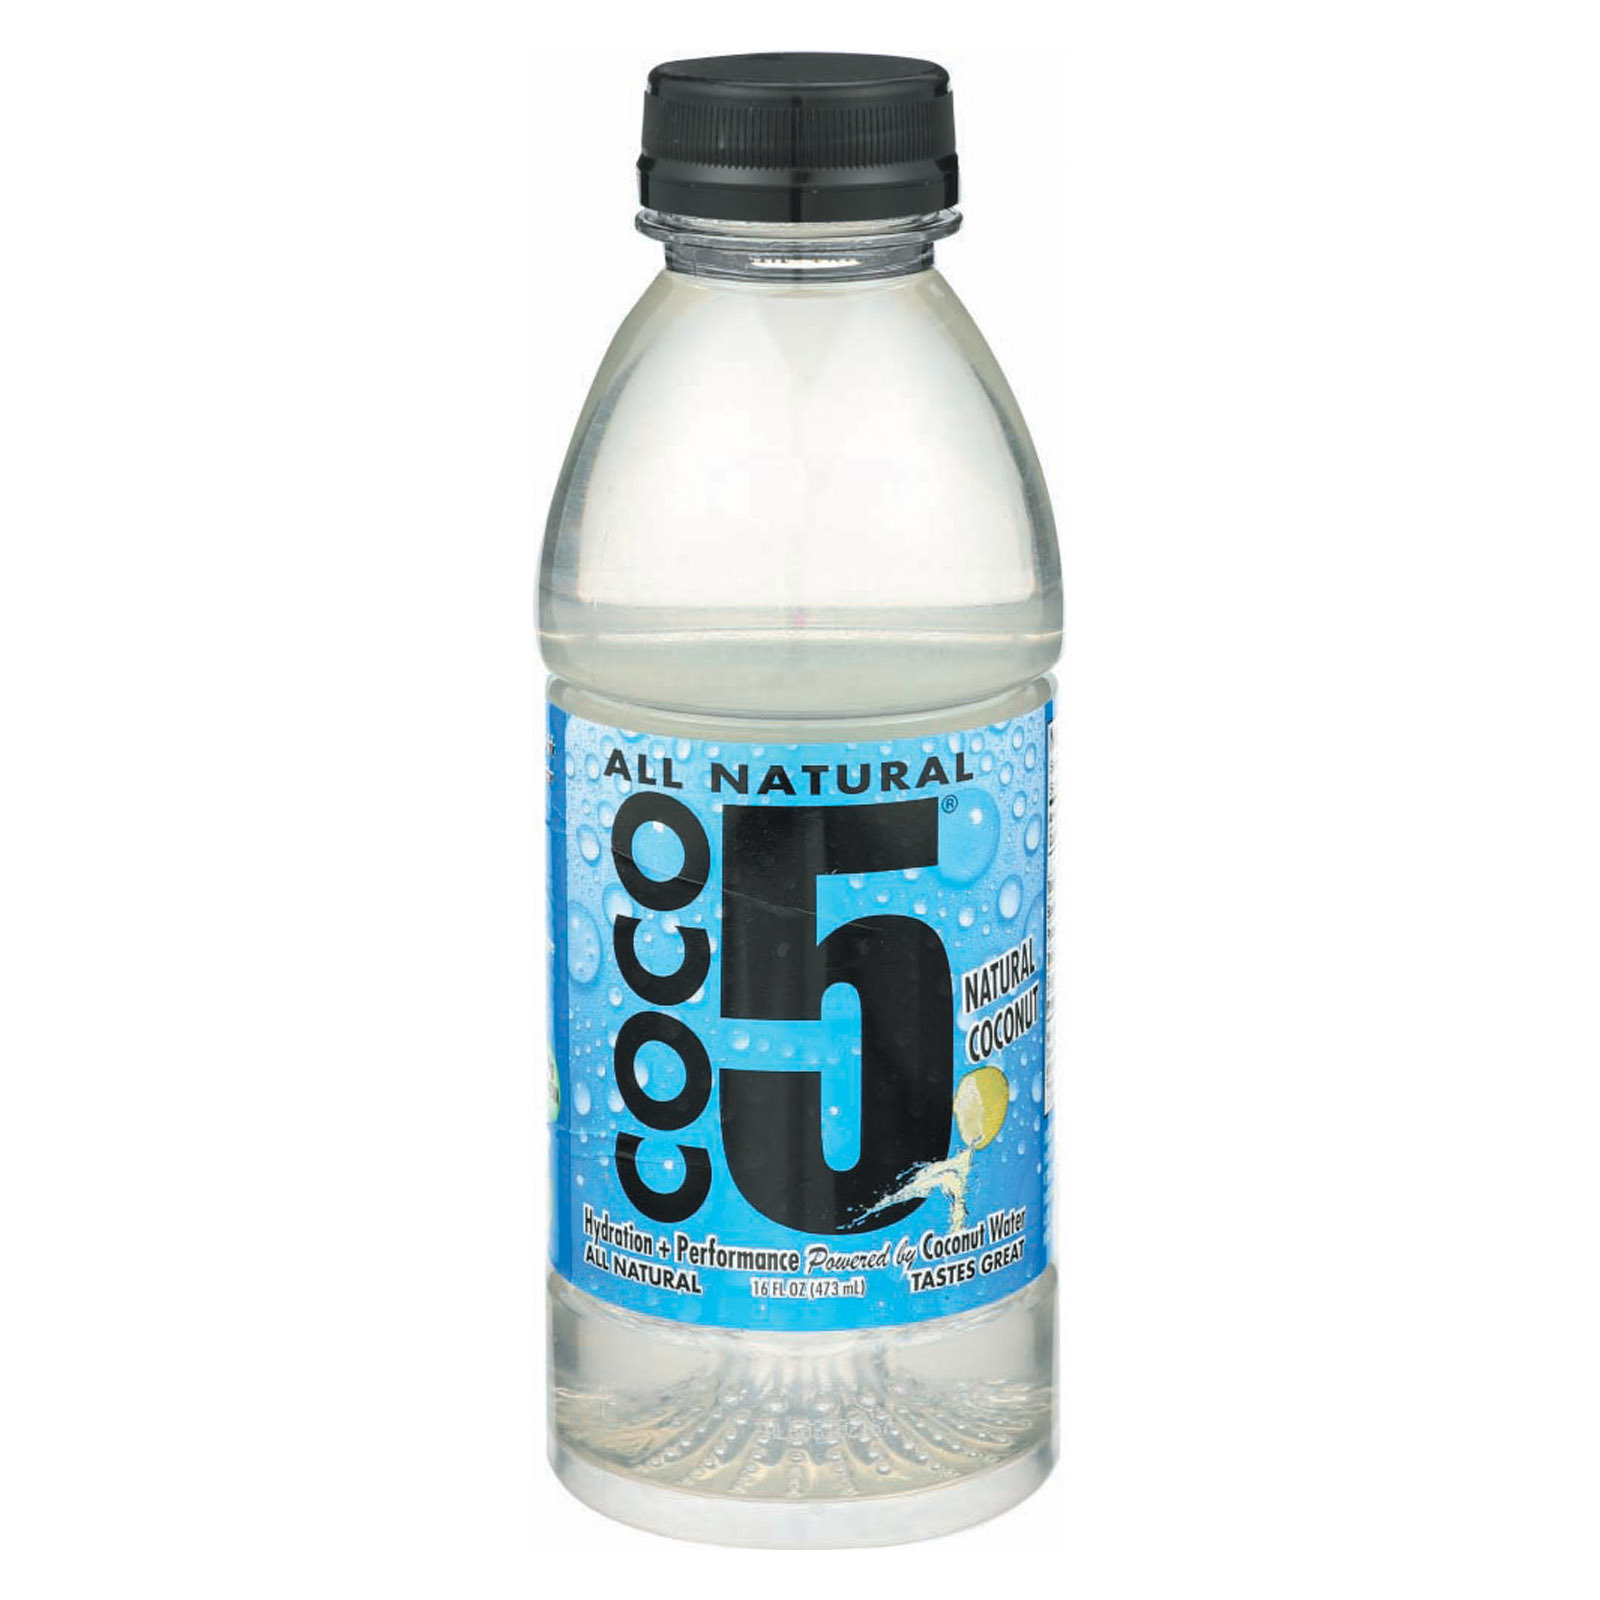 Coco5 Coconut Water - Coconut - Case of 12 - 16.9 fl oz